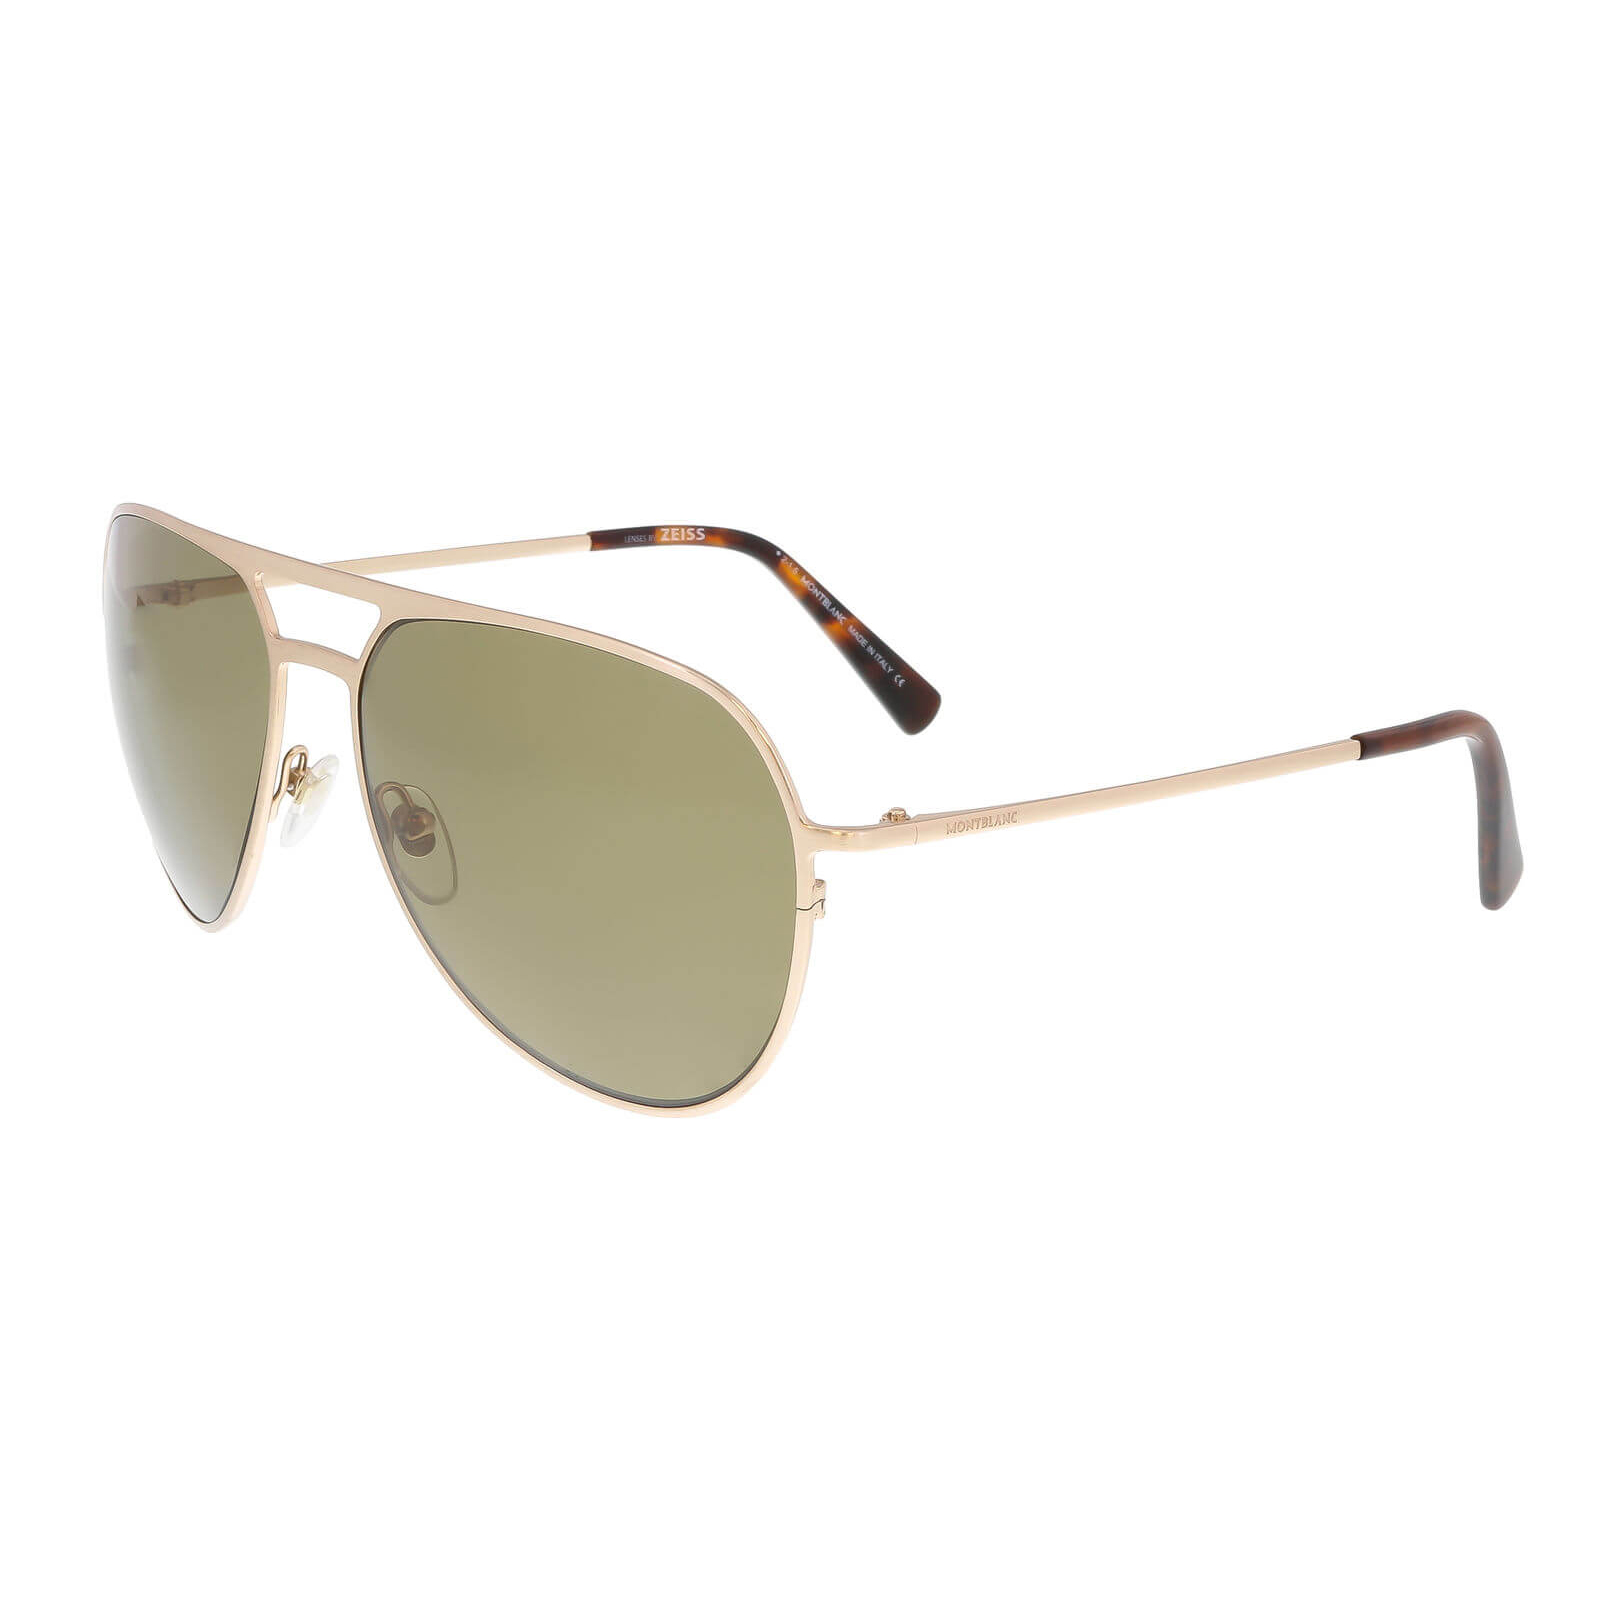 472d6f1628 Montblanc MB546S 28H Gold Aviator Polarized Sunglasses